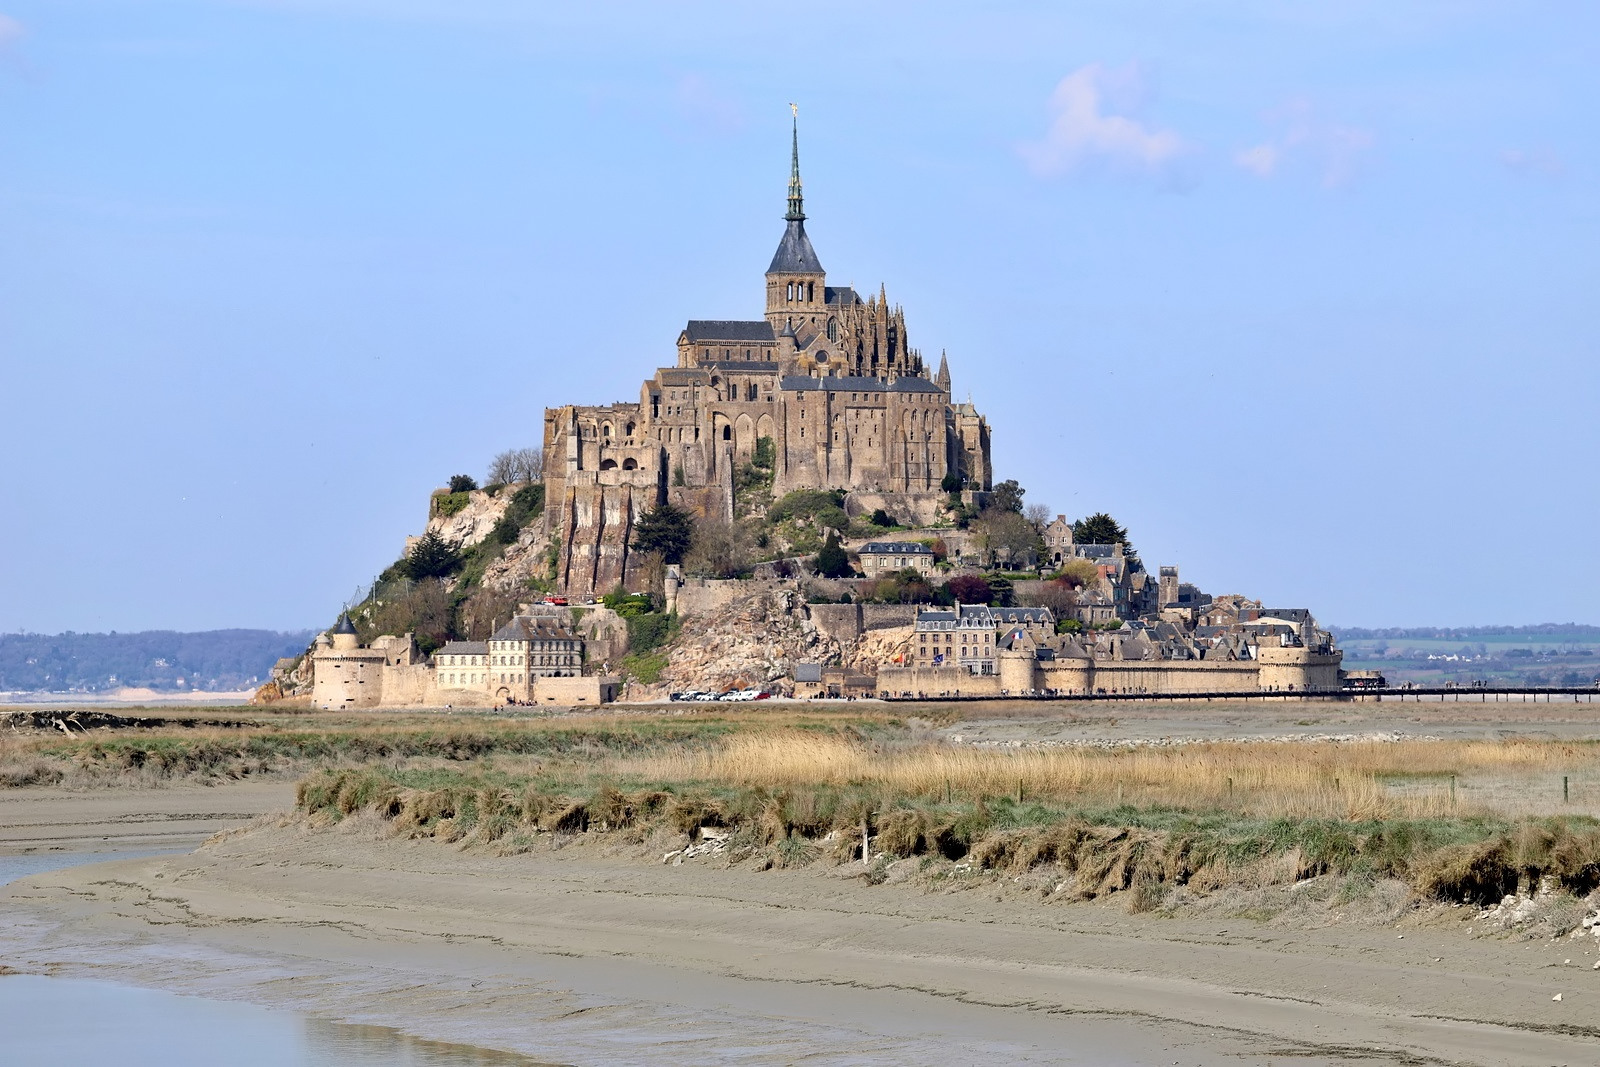 Mont Saint Michel Mars 2019 Img_3095_filtered-55f8680